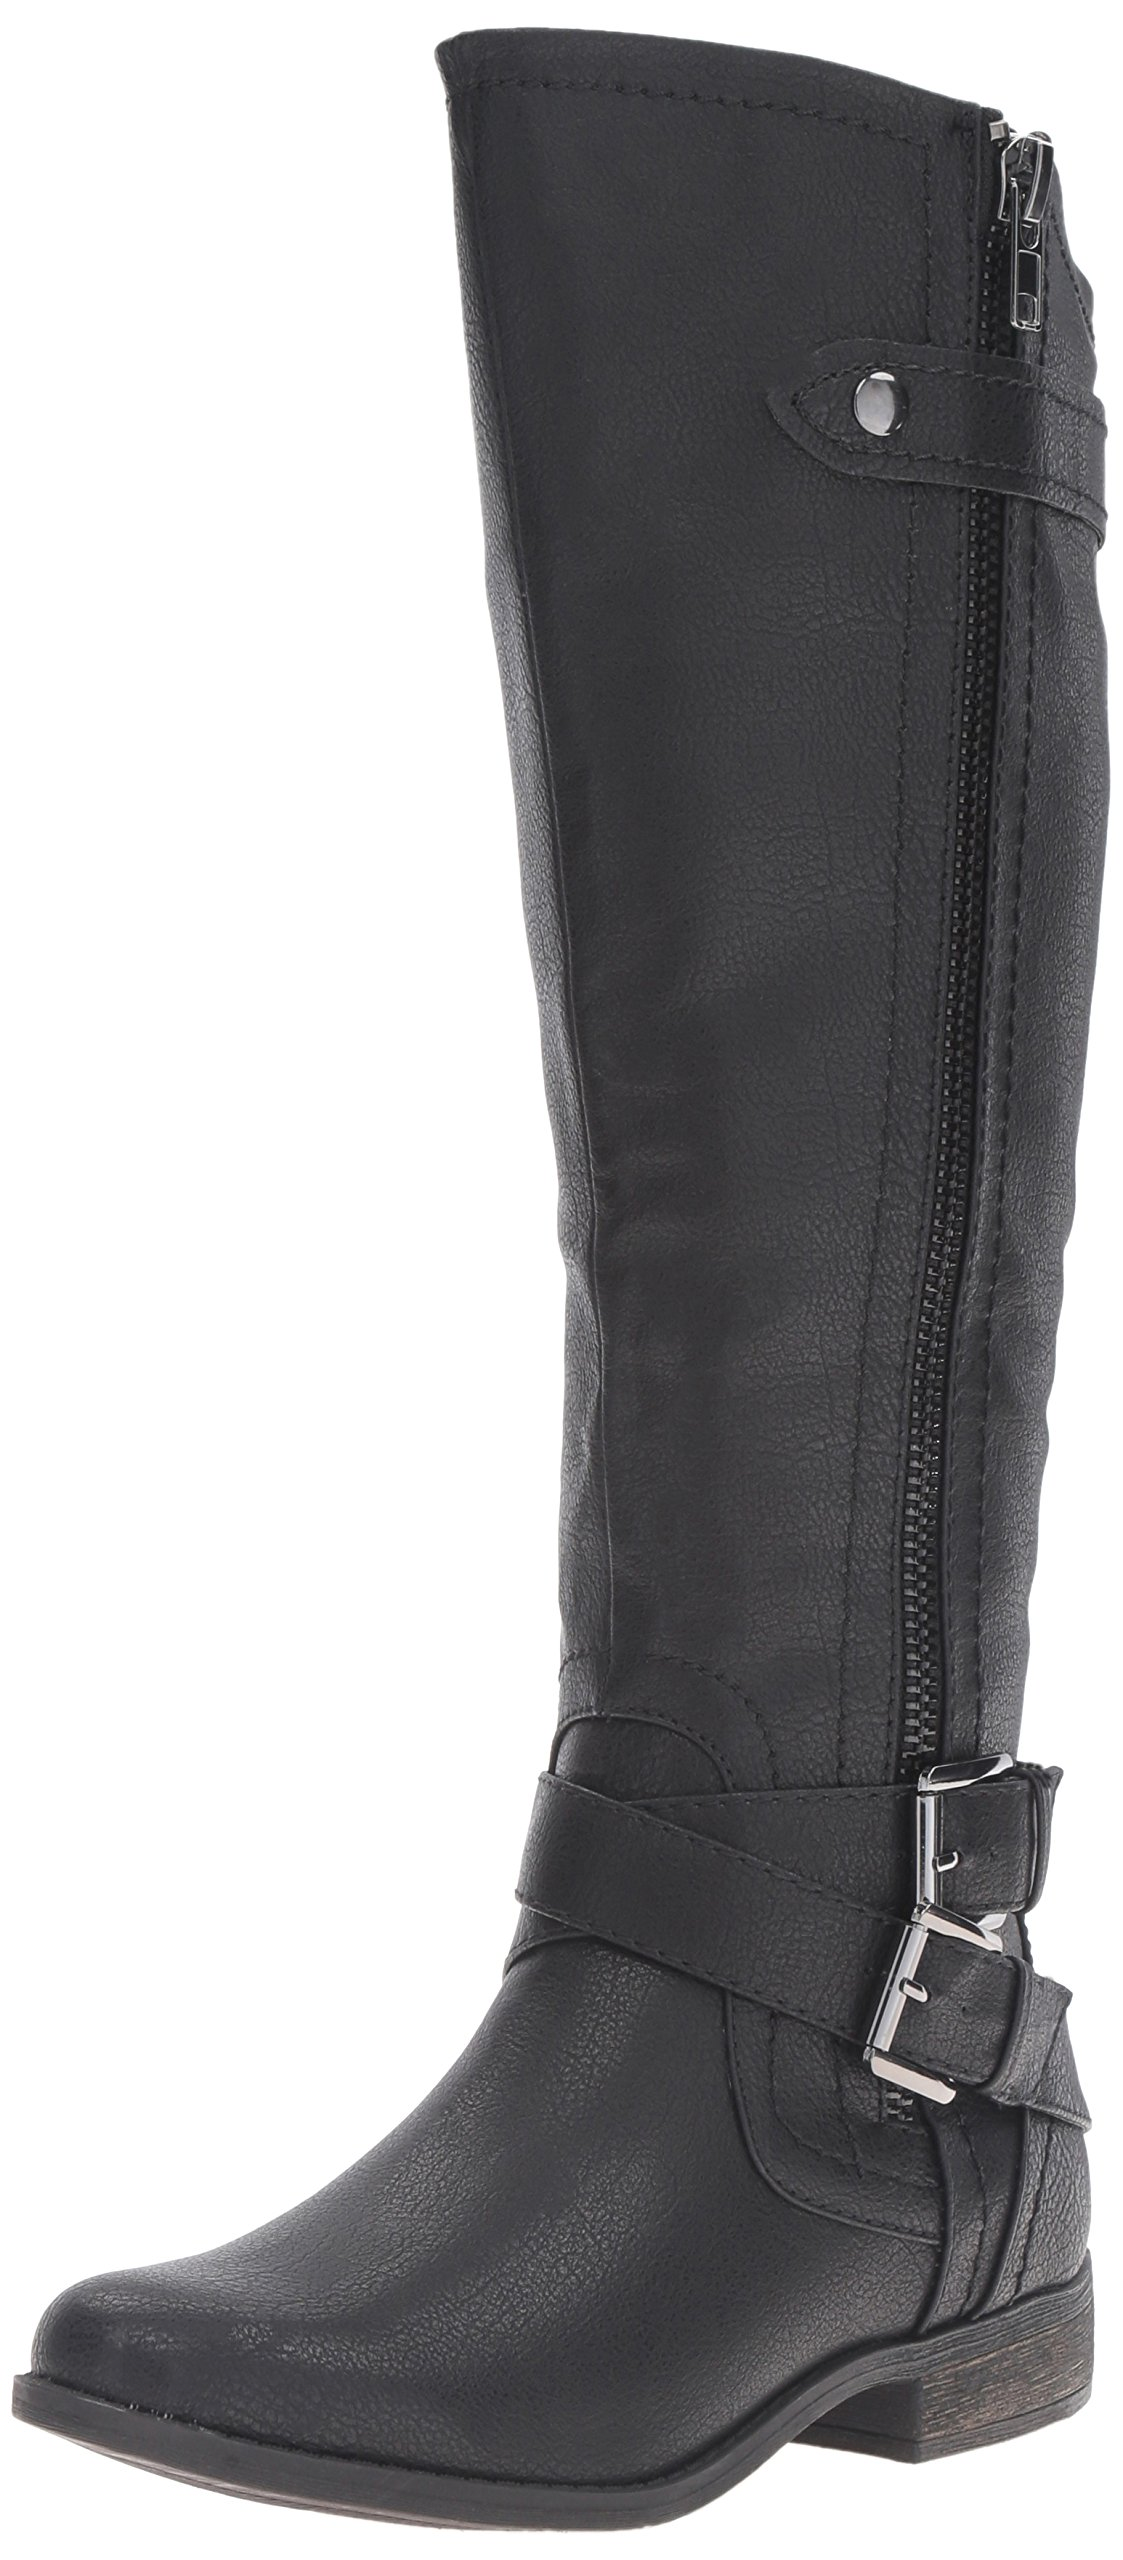 Rampage Women's Hansel Zipper and Buckle Knee-High Riding Boot,Black Smooth,11 B(M) US Wide Calf